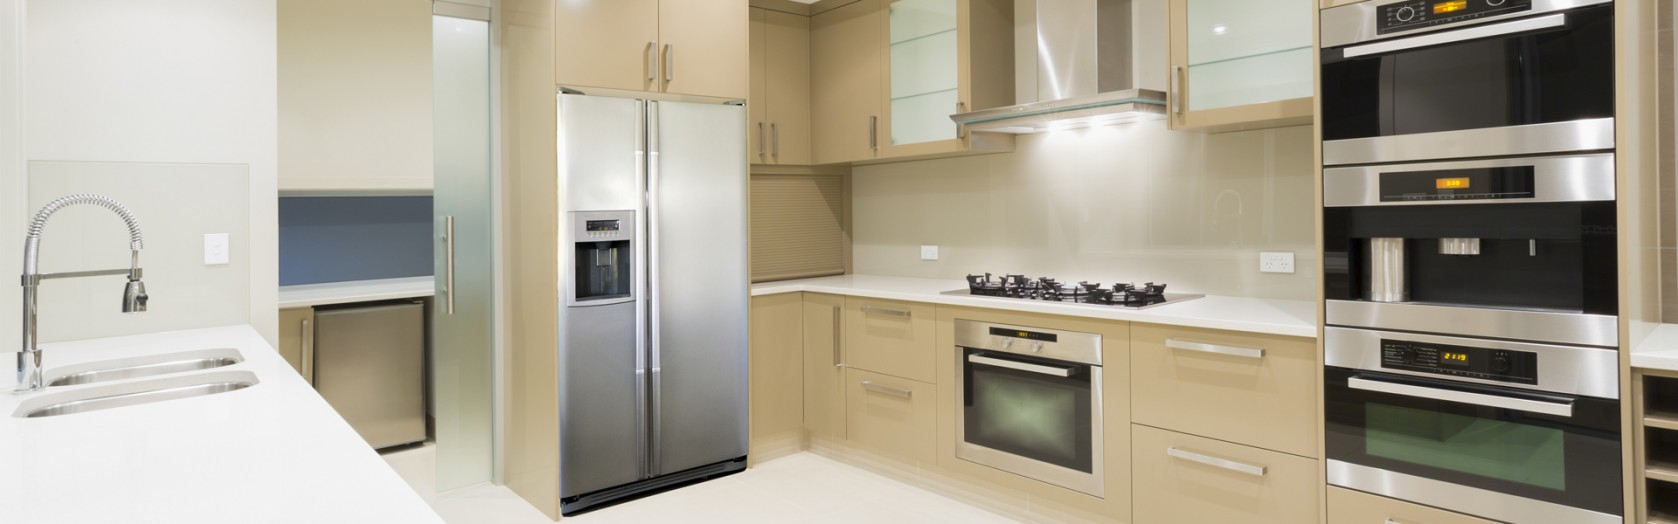 High Quality Service for you Home Appliances